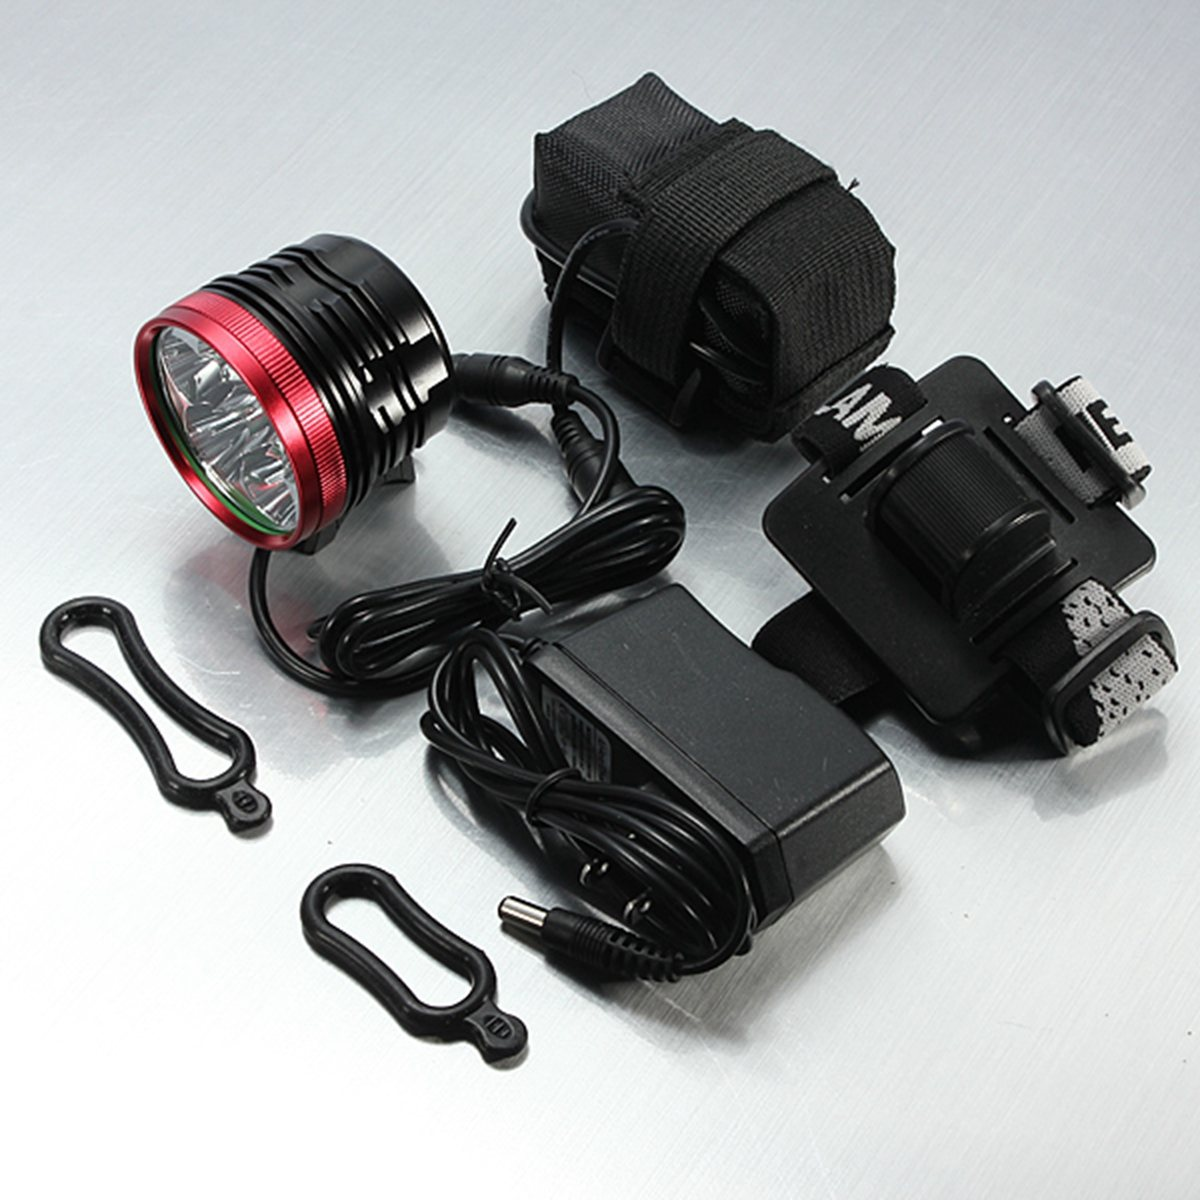 Waterproof 9000LM 3 modes 6x for XM-L2 T6 led Bike Bicycle Front Light Headlight Headlamp + 18650 Battery Pack +Charger 2 in 1 13t6 bicycle headlight headlamp 23000 lumen 13x cree xm l t6 led cycling helmet bike light 18650 battery pack charger